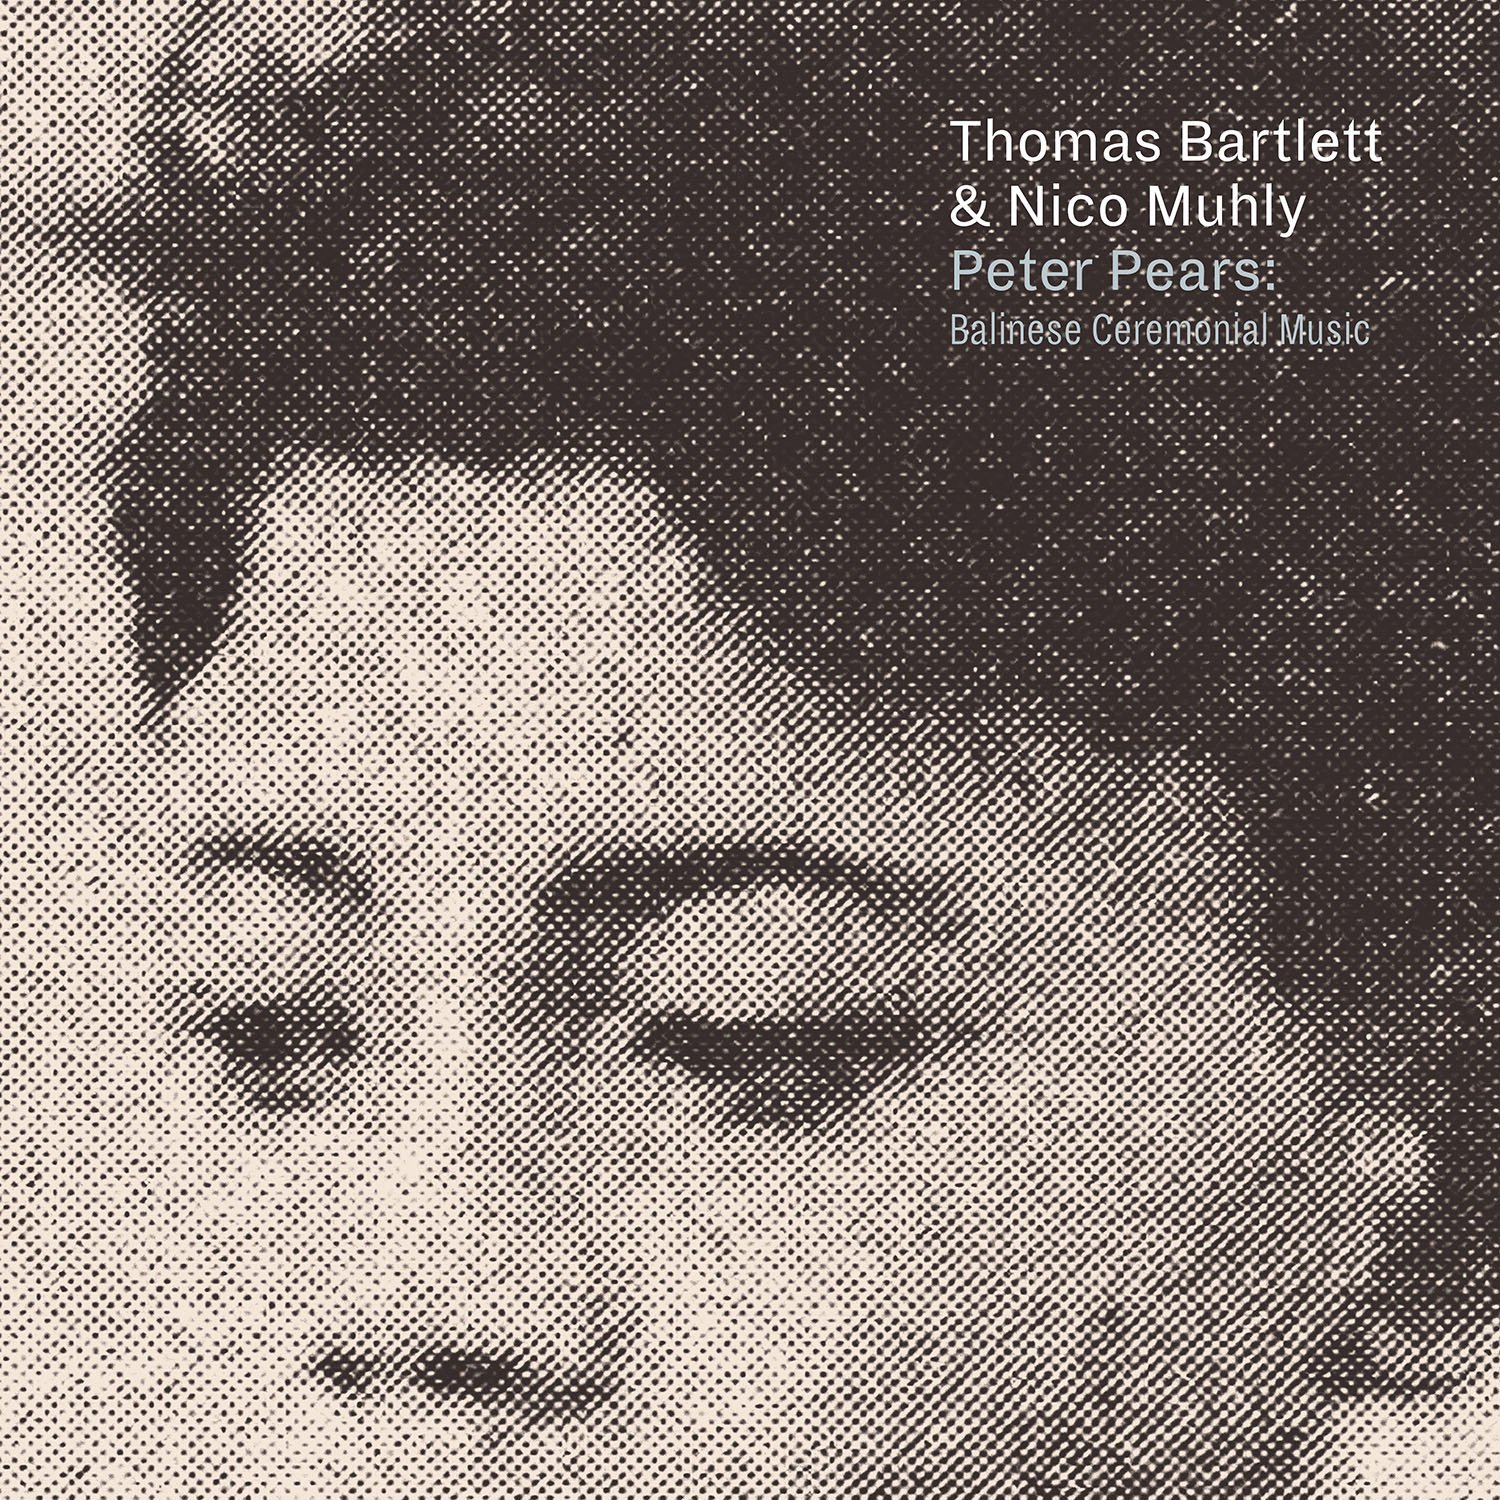 Thomas Bartlett / Muhly,Nico - Peter Pears: Balinese Ceremonial Music